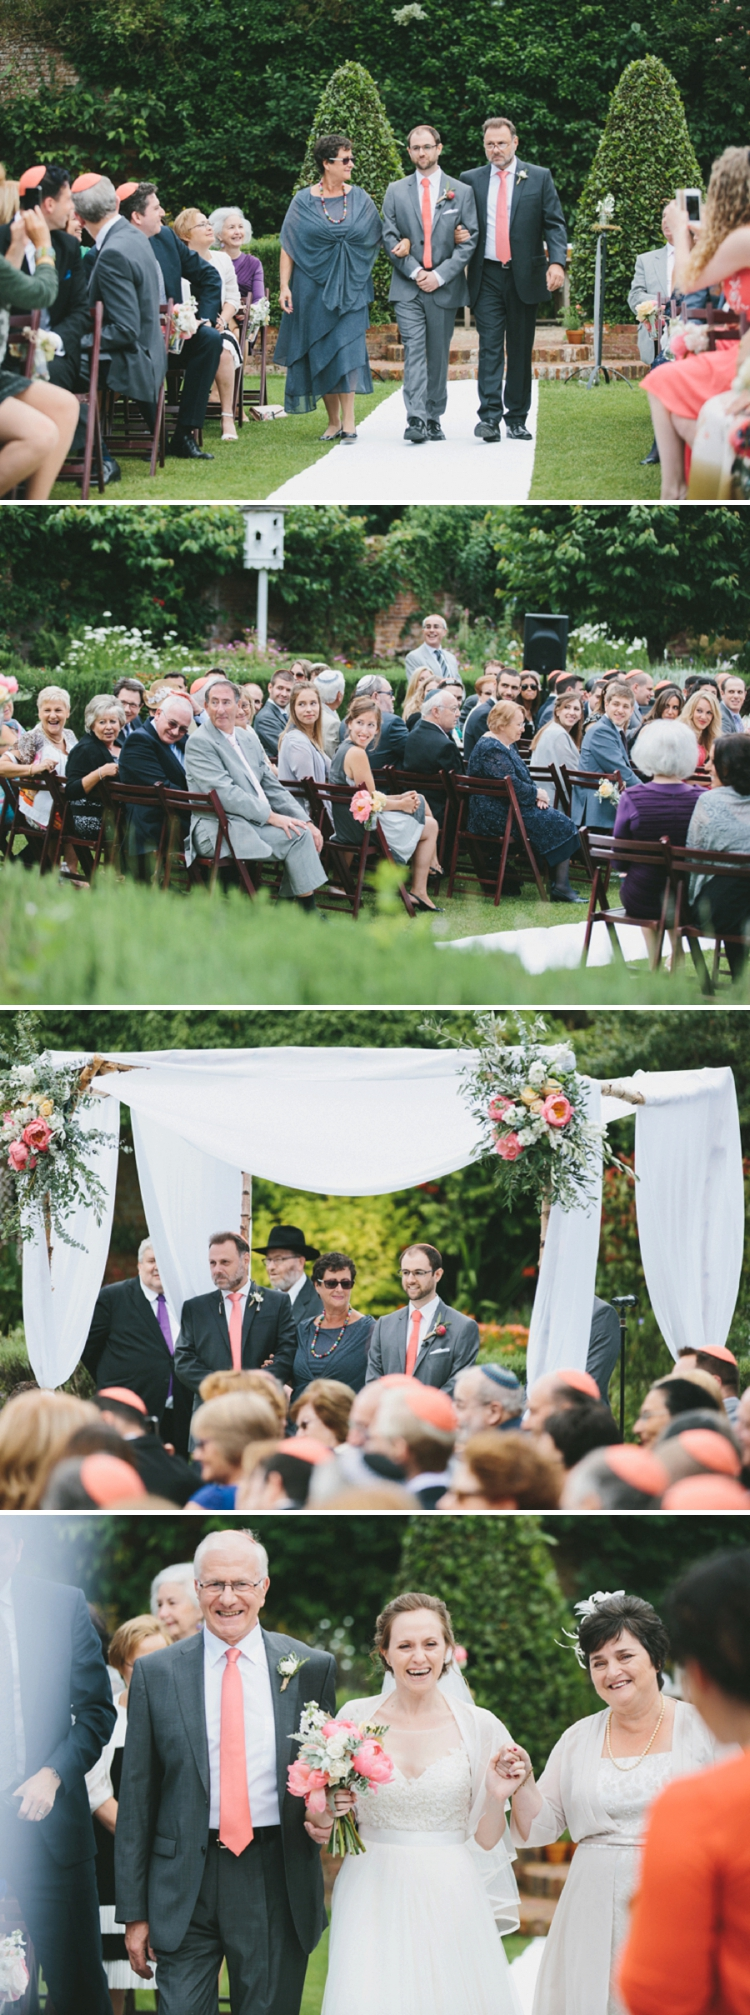 Gorgeous + Pretty Outdoor Jewish wedding at Northbrook Park, Farnham, Surrey UK